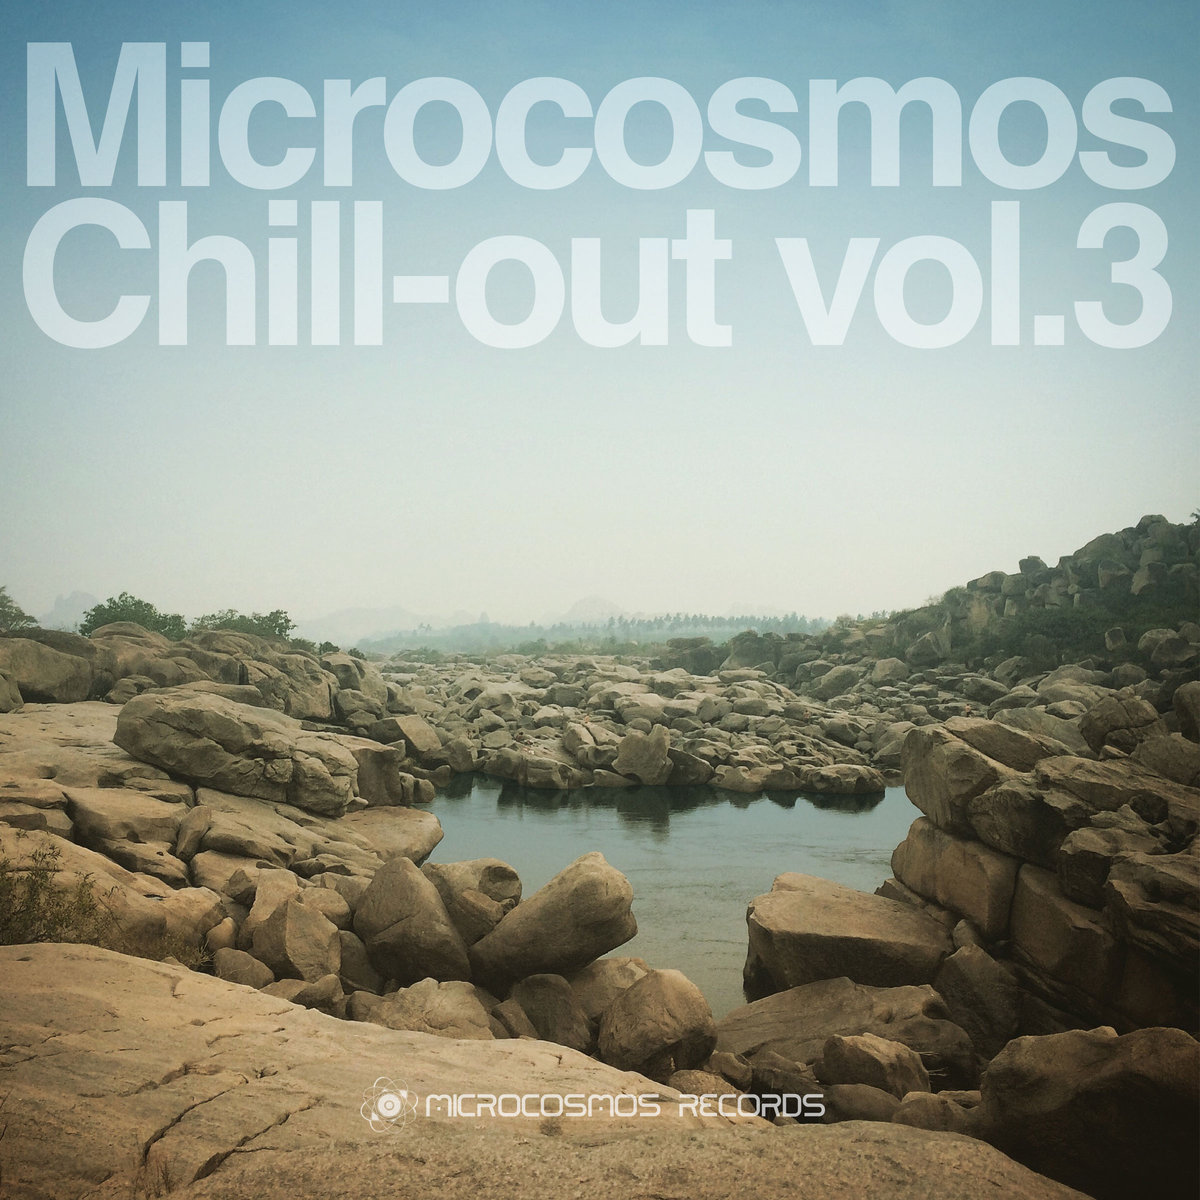 AuroraX - Photons Extended @ 'Microcosmos Chill-out Vol.3' album (ambient, chill-out)